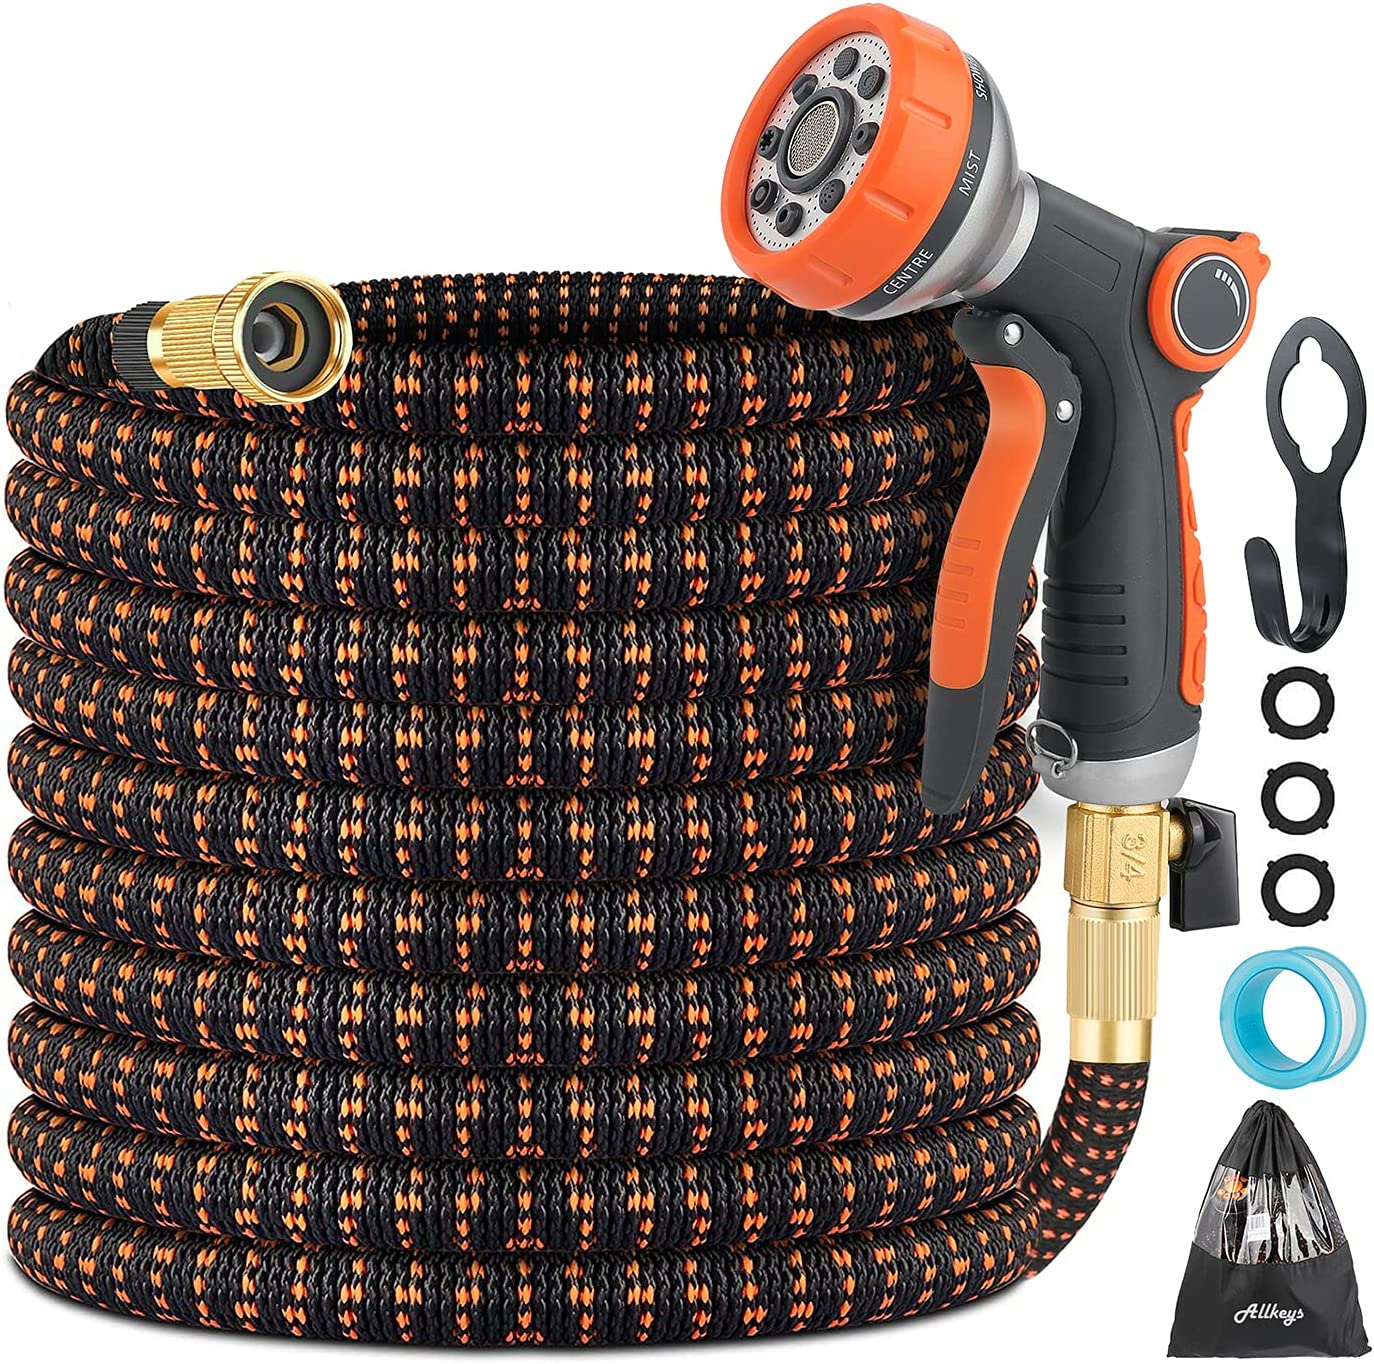 Expandable Garden Hose - 50ft Flexible Water Hose with Durable triple Layers Latex, 8 Function Spray Nozzle and 3/4